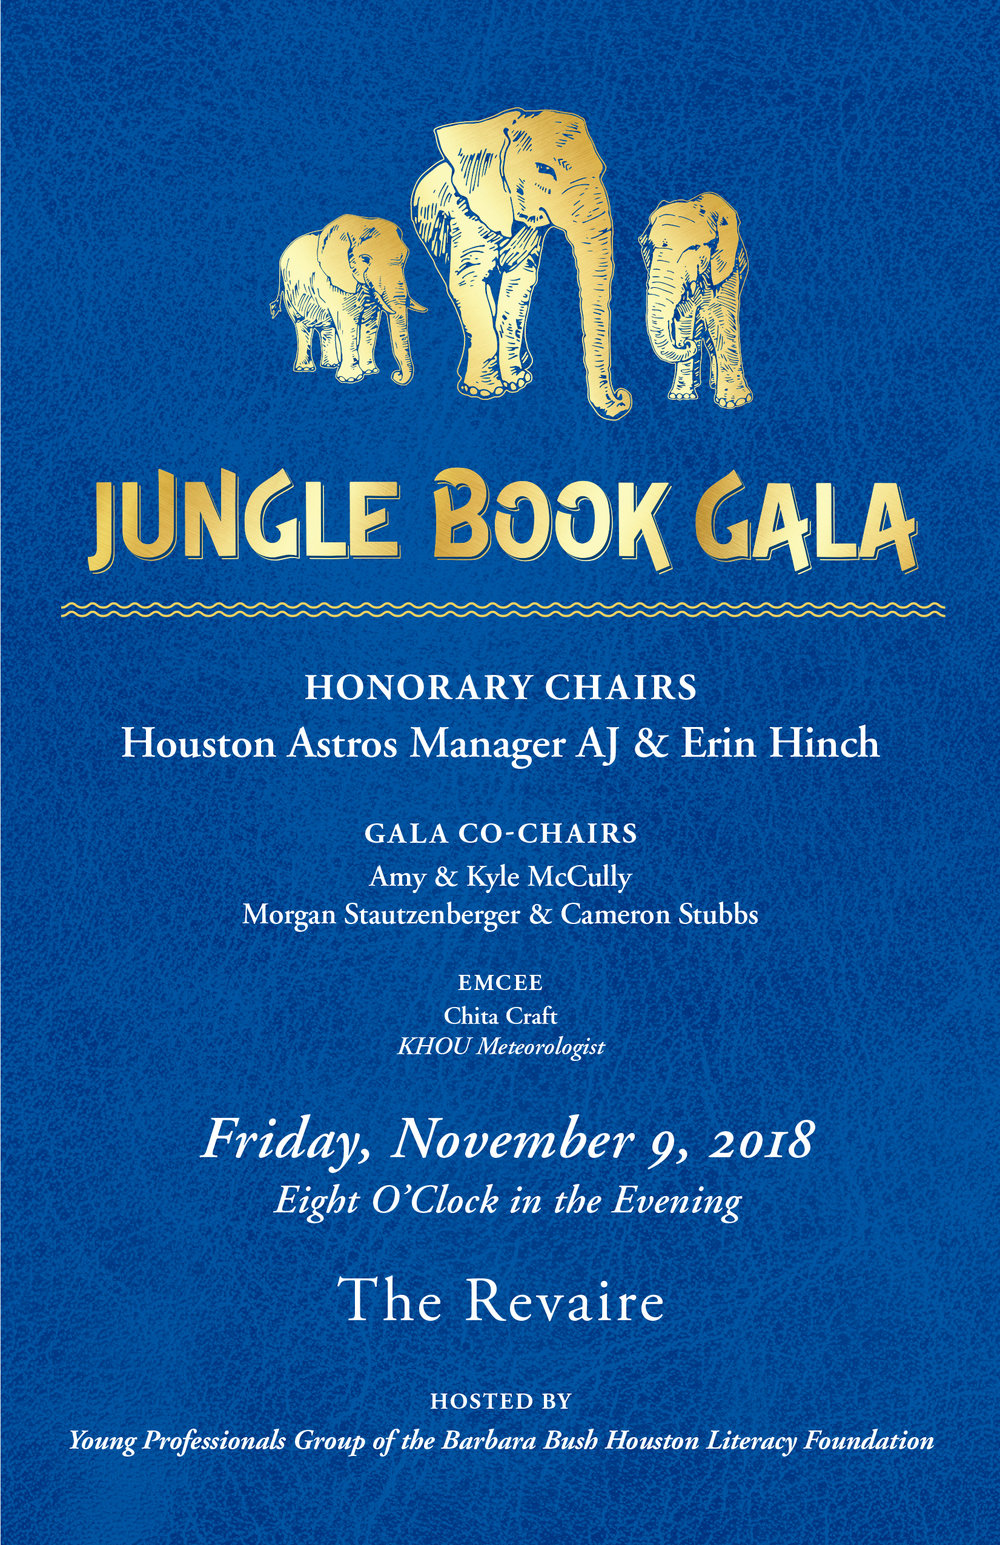 Jungle Book Gala Event Program-1.jpg